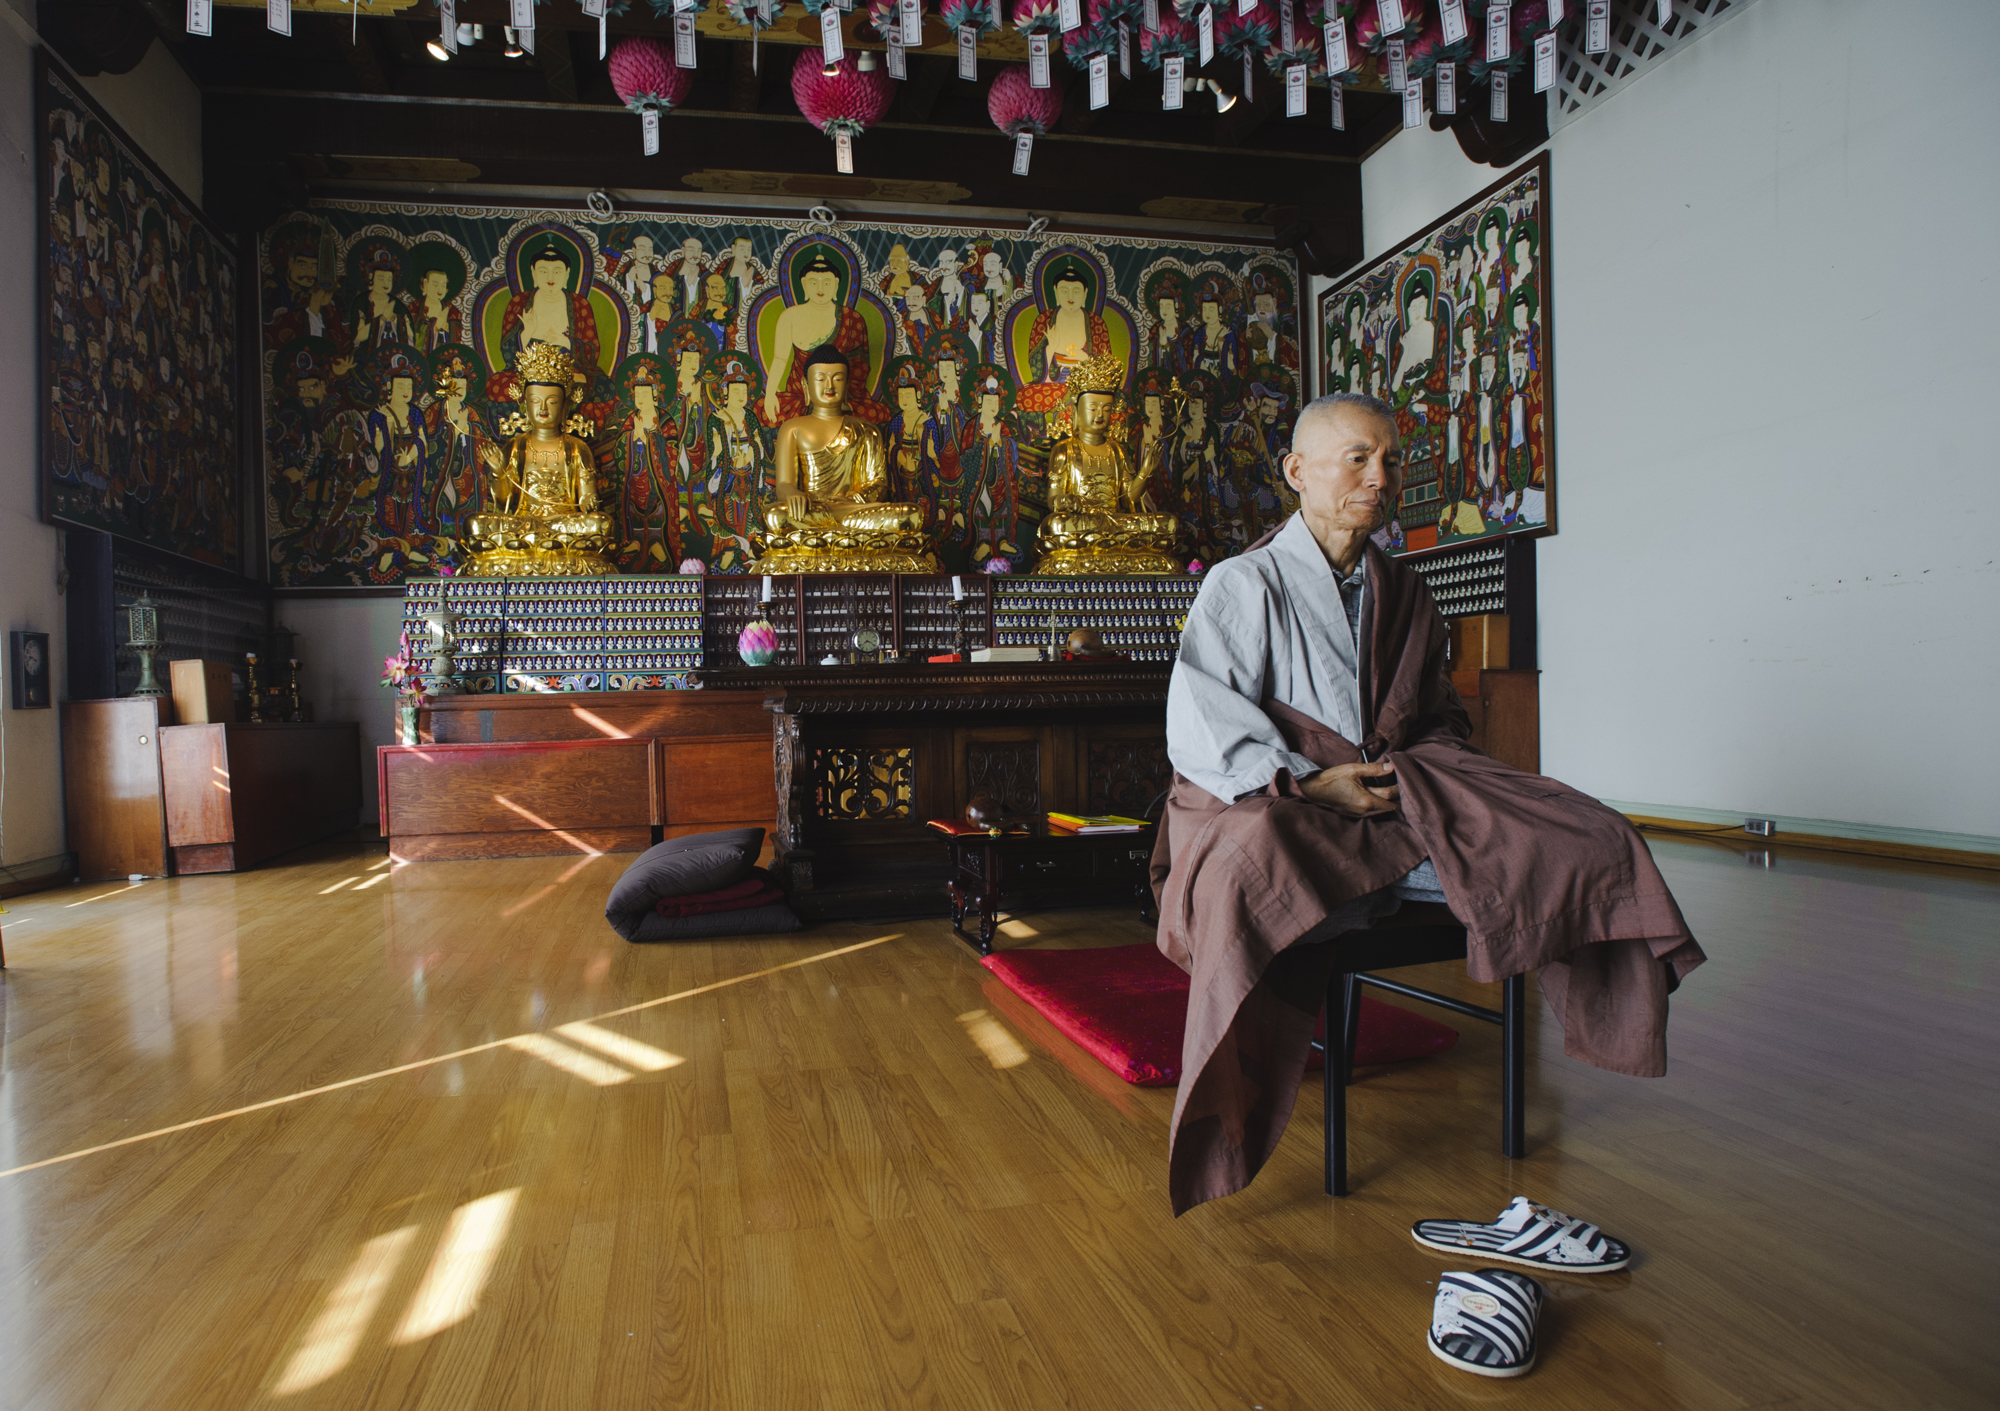 Meditation Master Daeryun poses for a portrait at the Korean Buddhist Culture Center on Oxford Avenue and 3rd Street. He has taught meditation for 35 years and leads services at the center every Sunday as well as private services with individuals wanting meditation guidance.